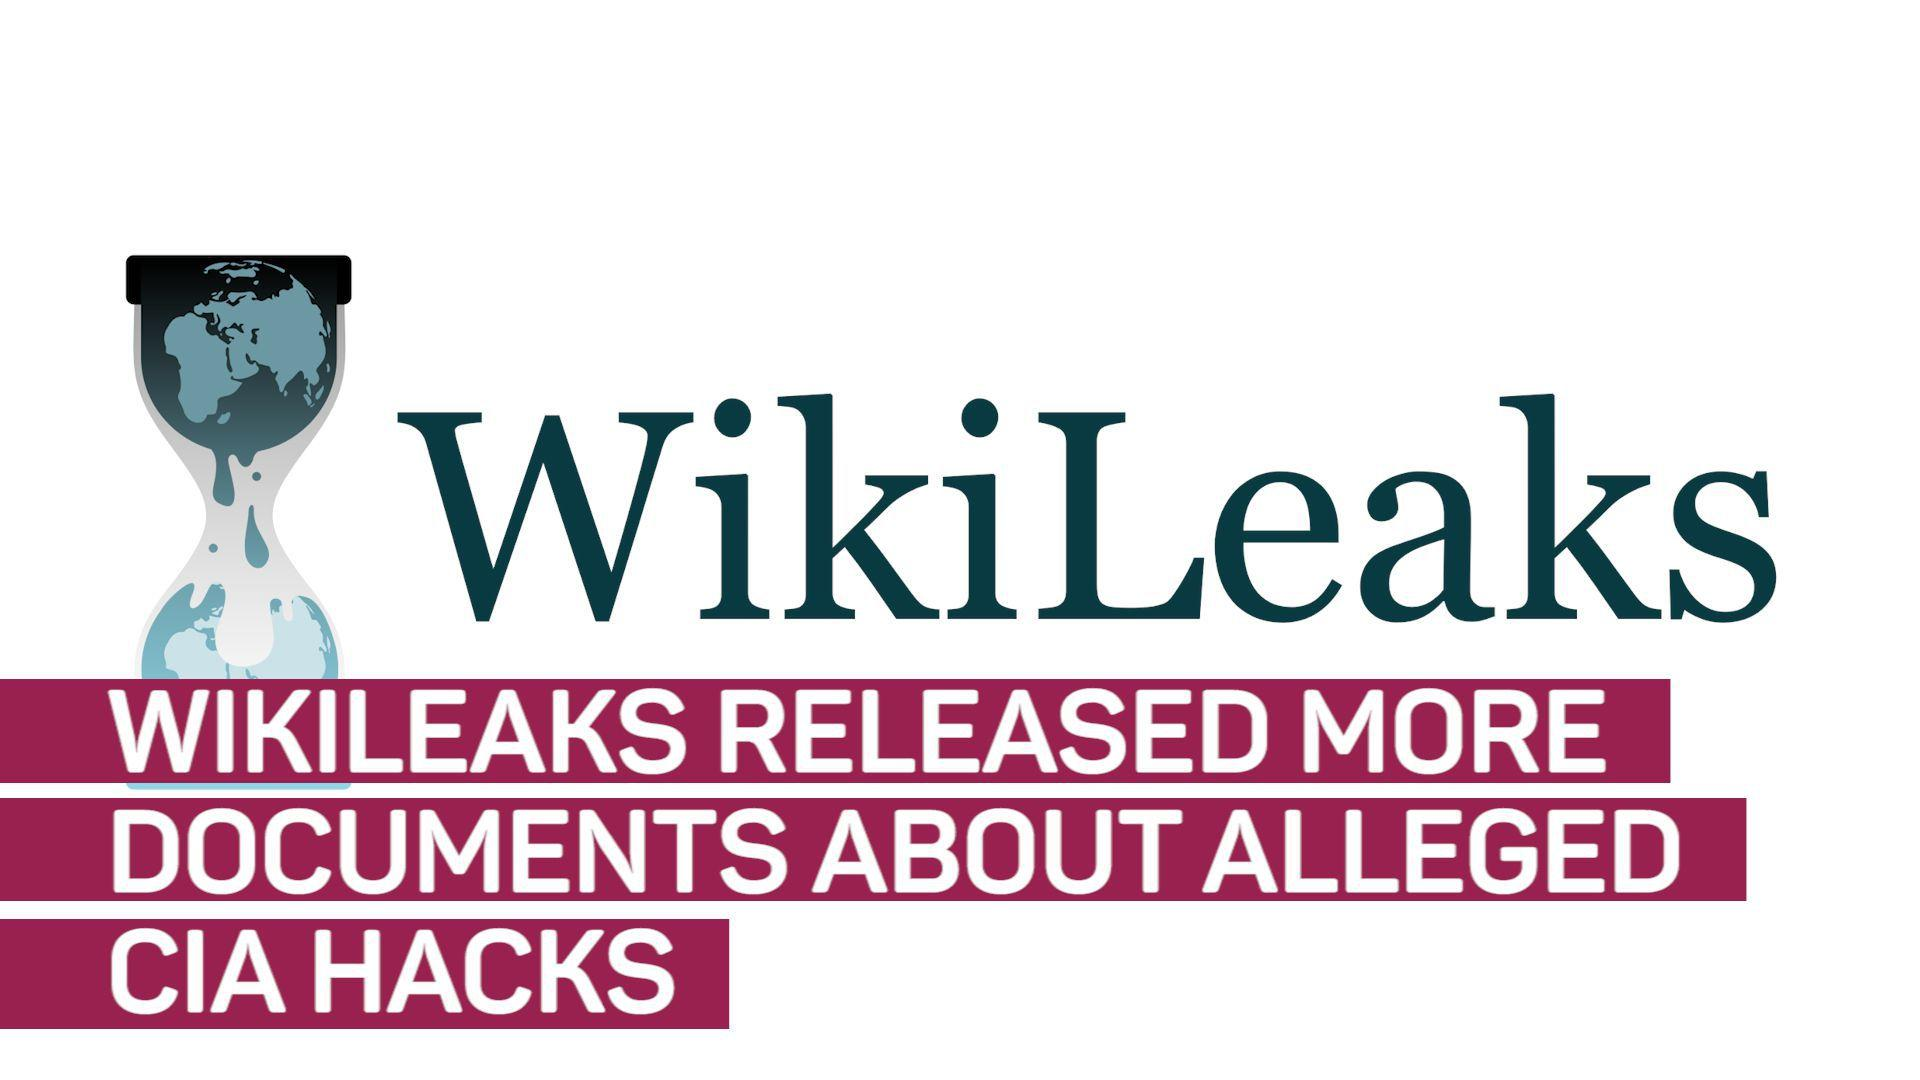 Apple at center of alleged WikiLeaks hacks